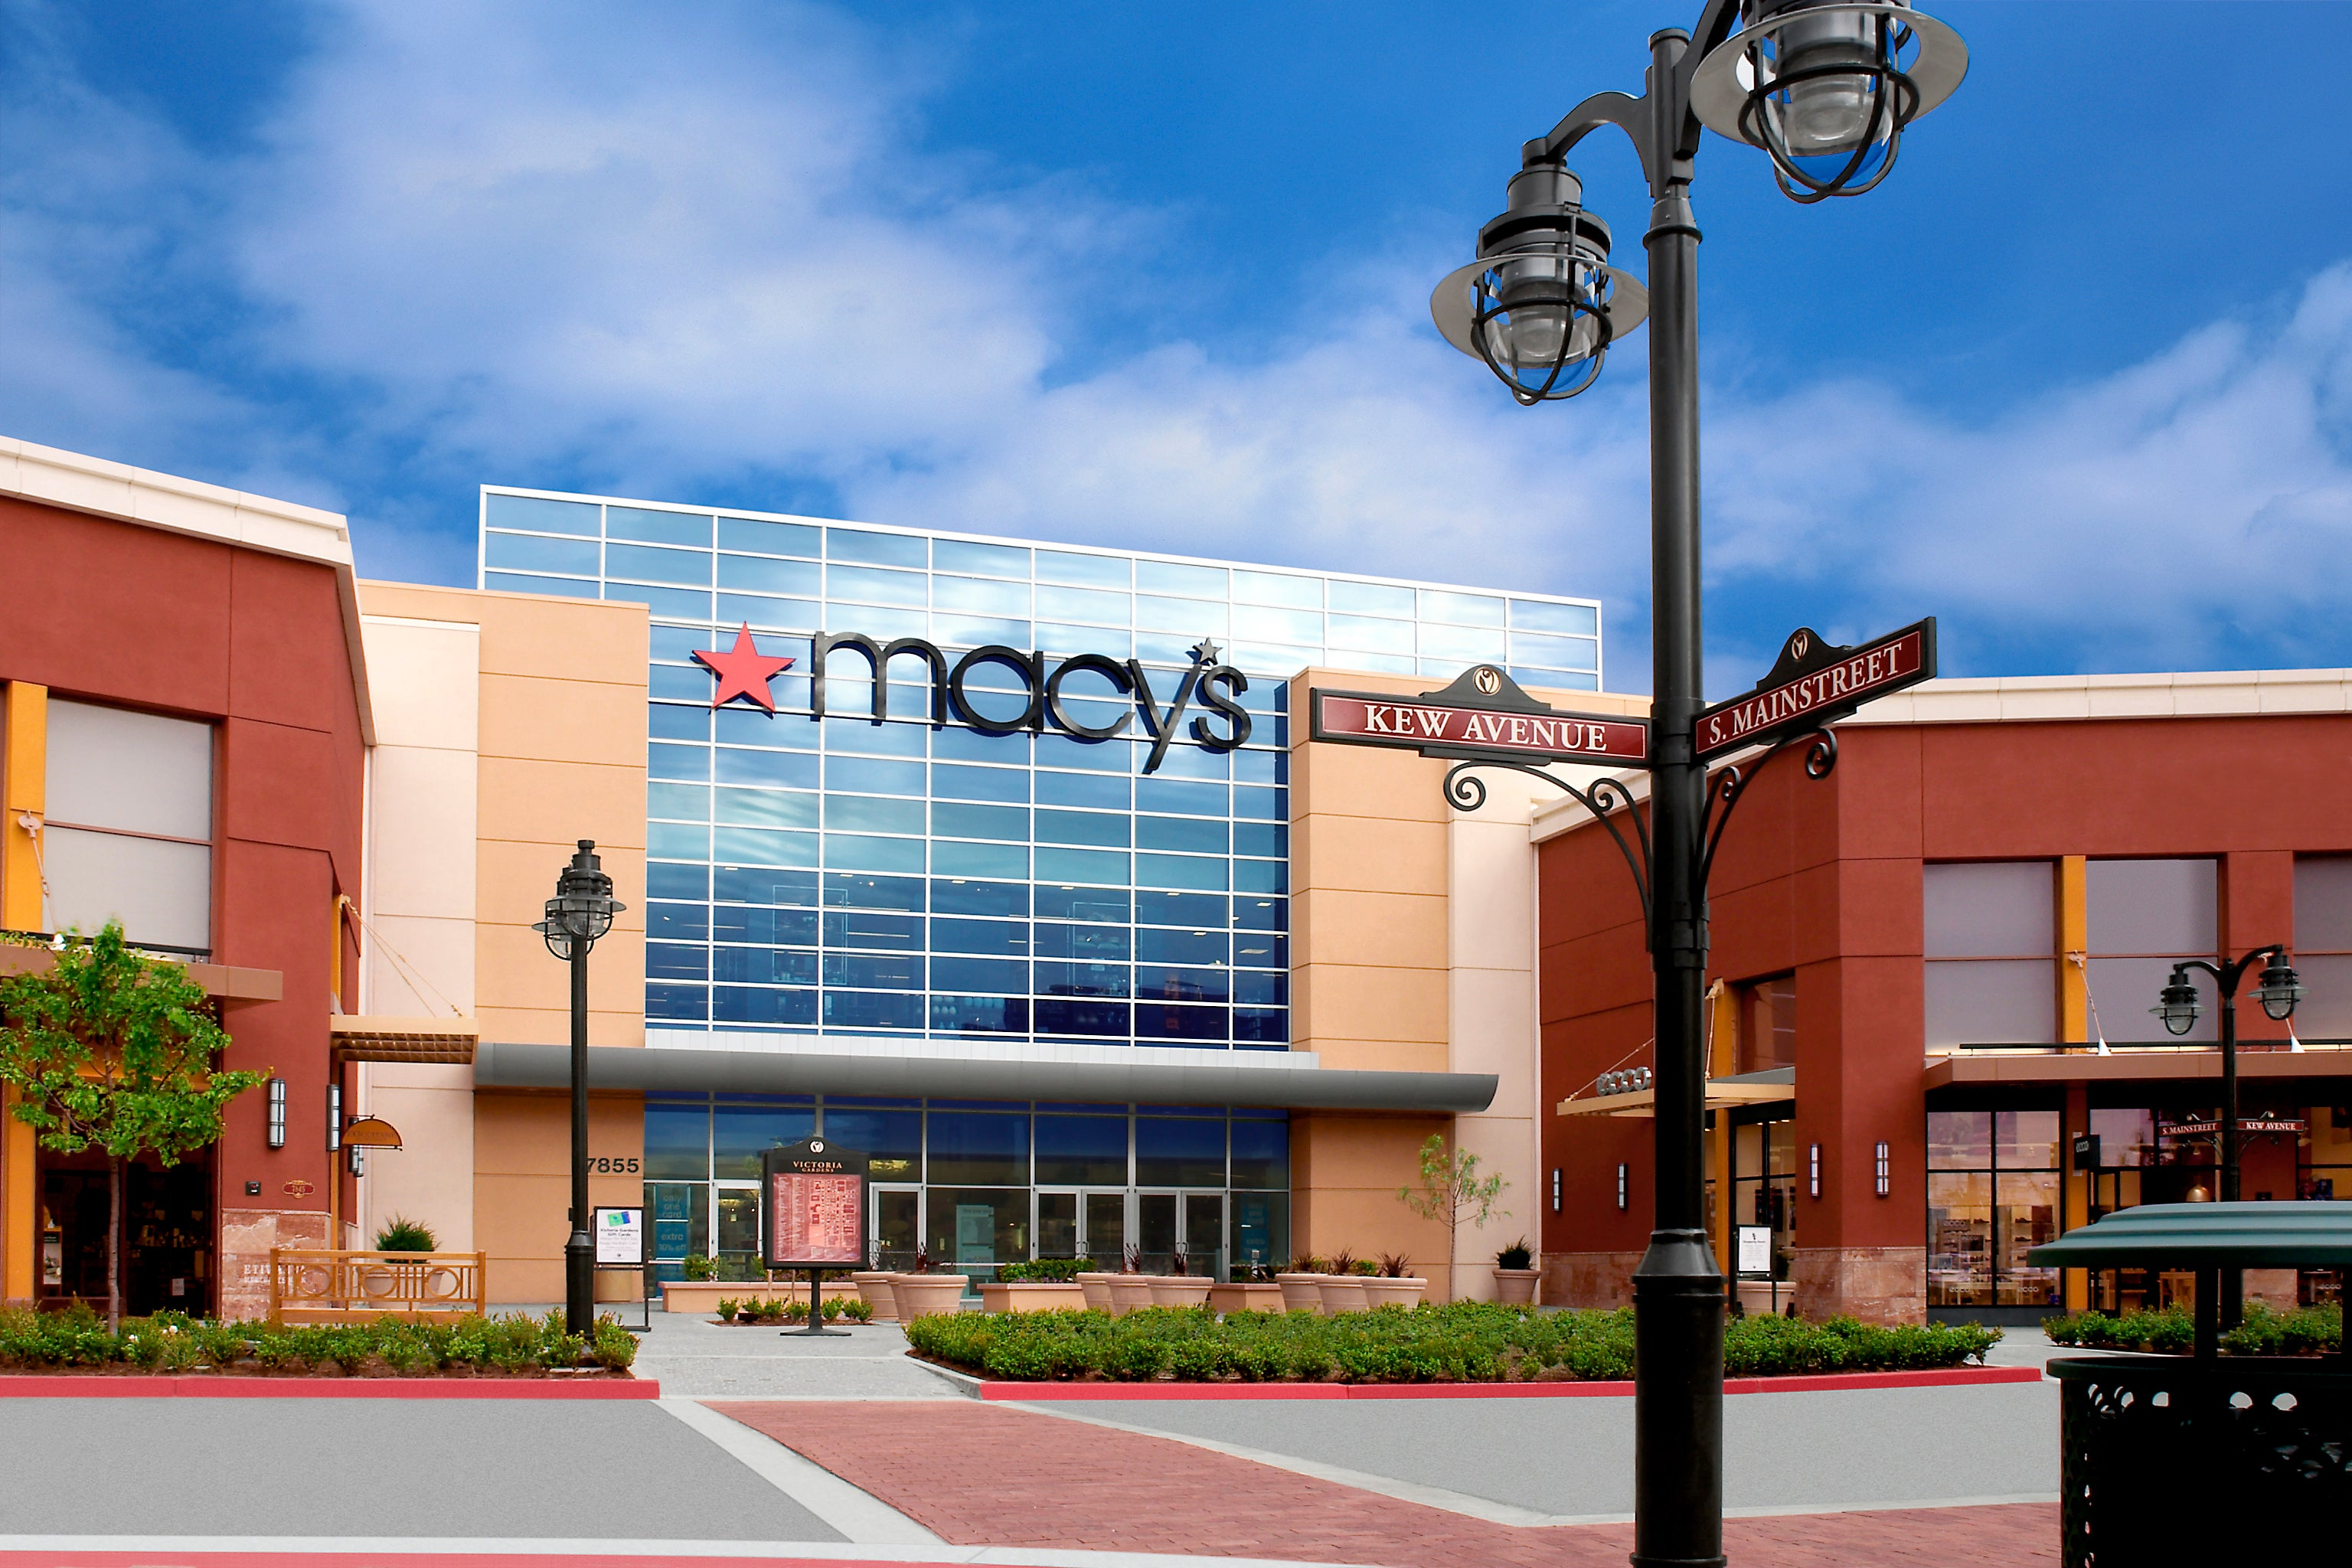 Why Im Not Worried About A Macys Inc Dividend Cut The Motley Fool